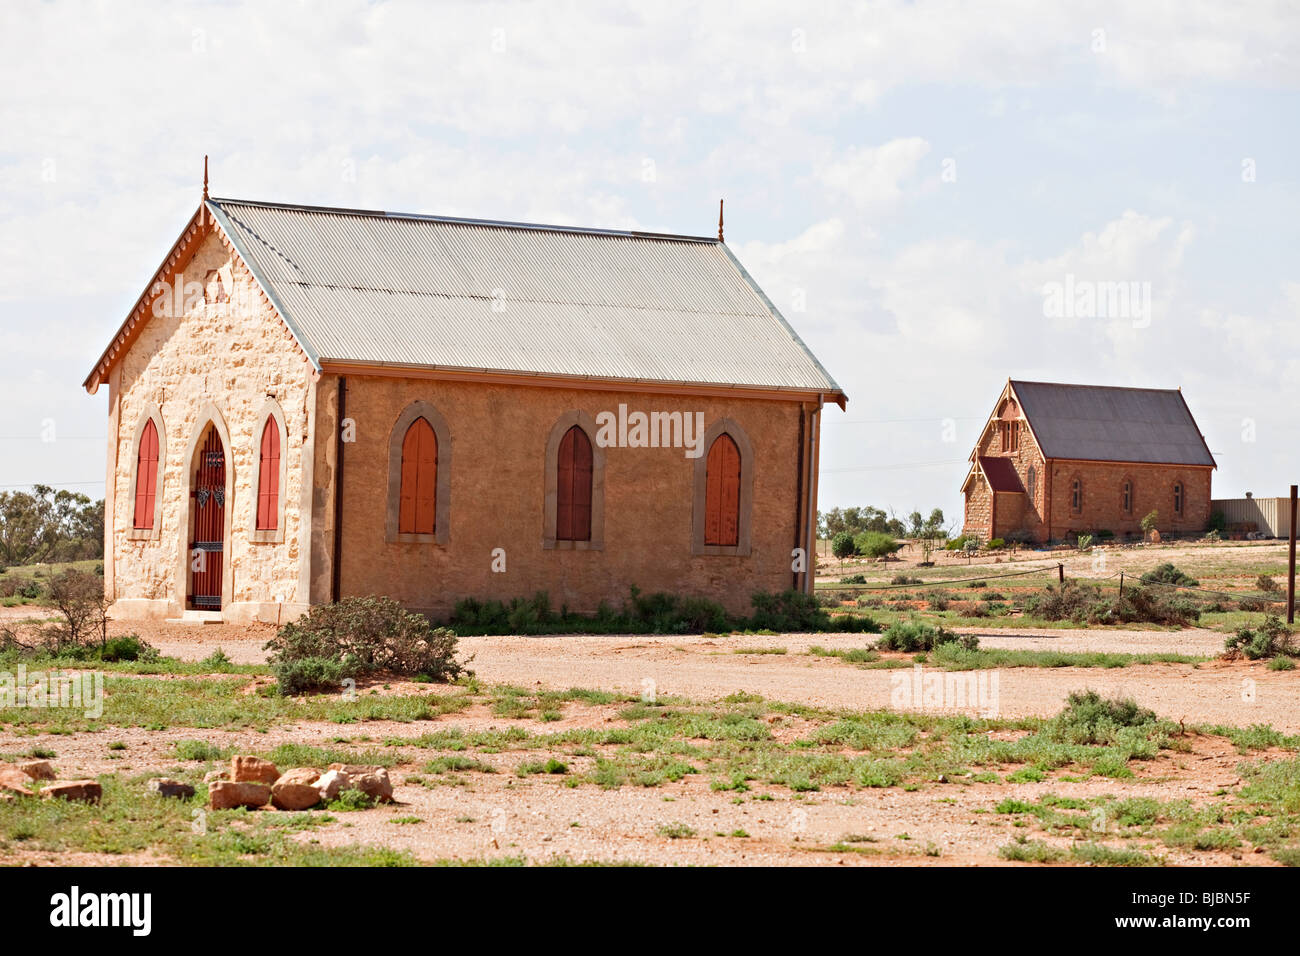 Methodist church with catholic church in the background, Silverton near Broken Hill, Outback Australia NSW Stock Photo